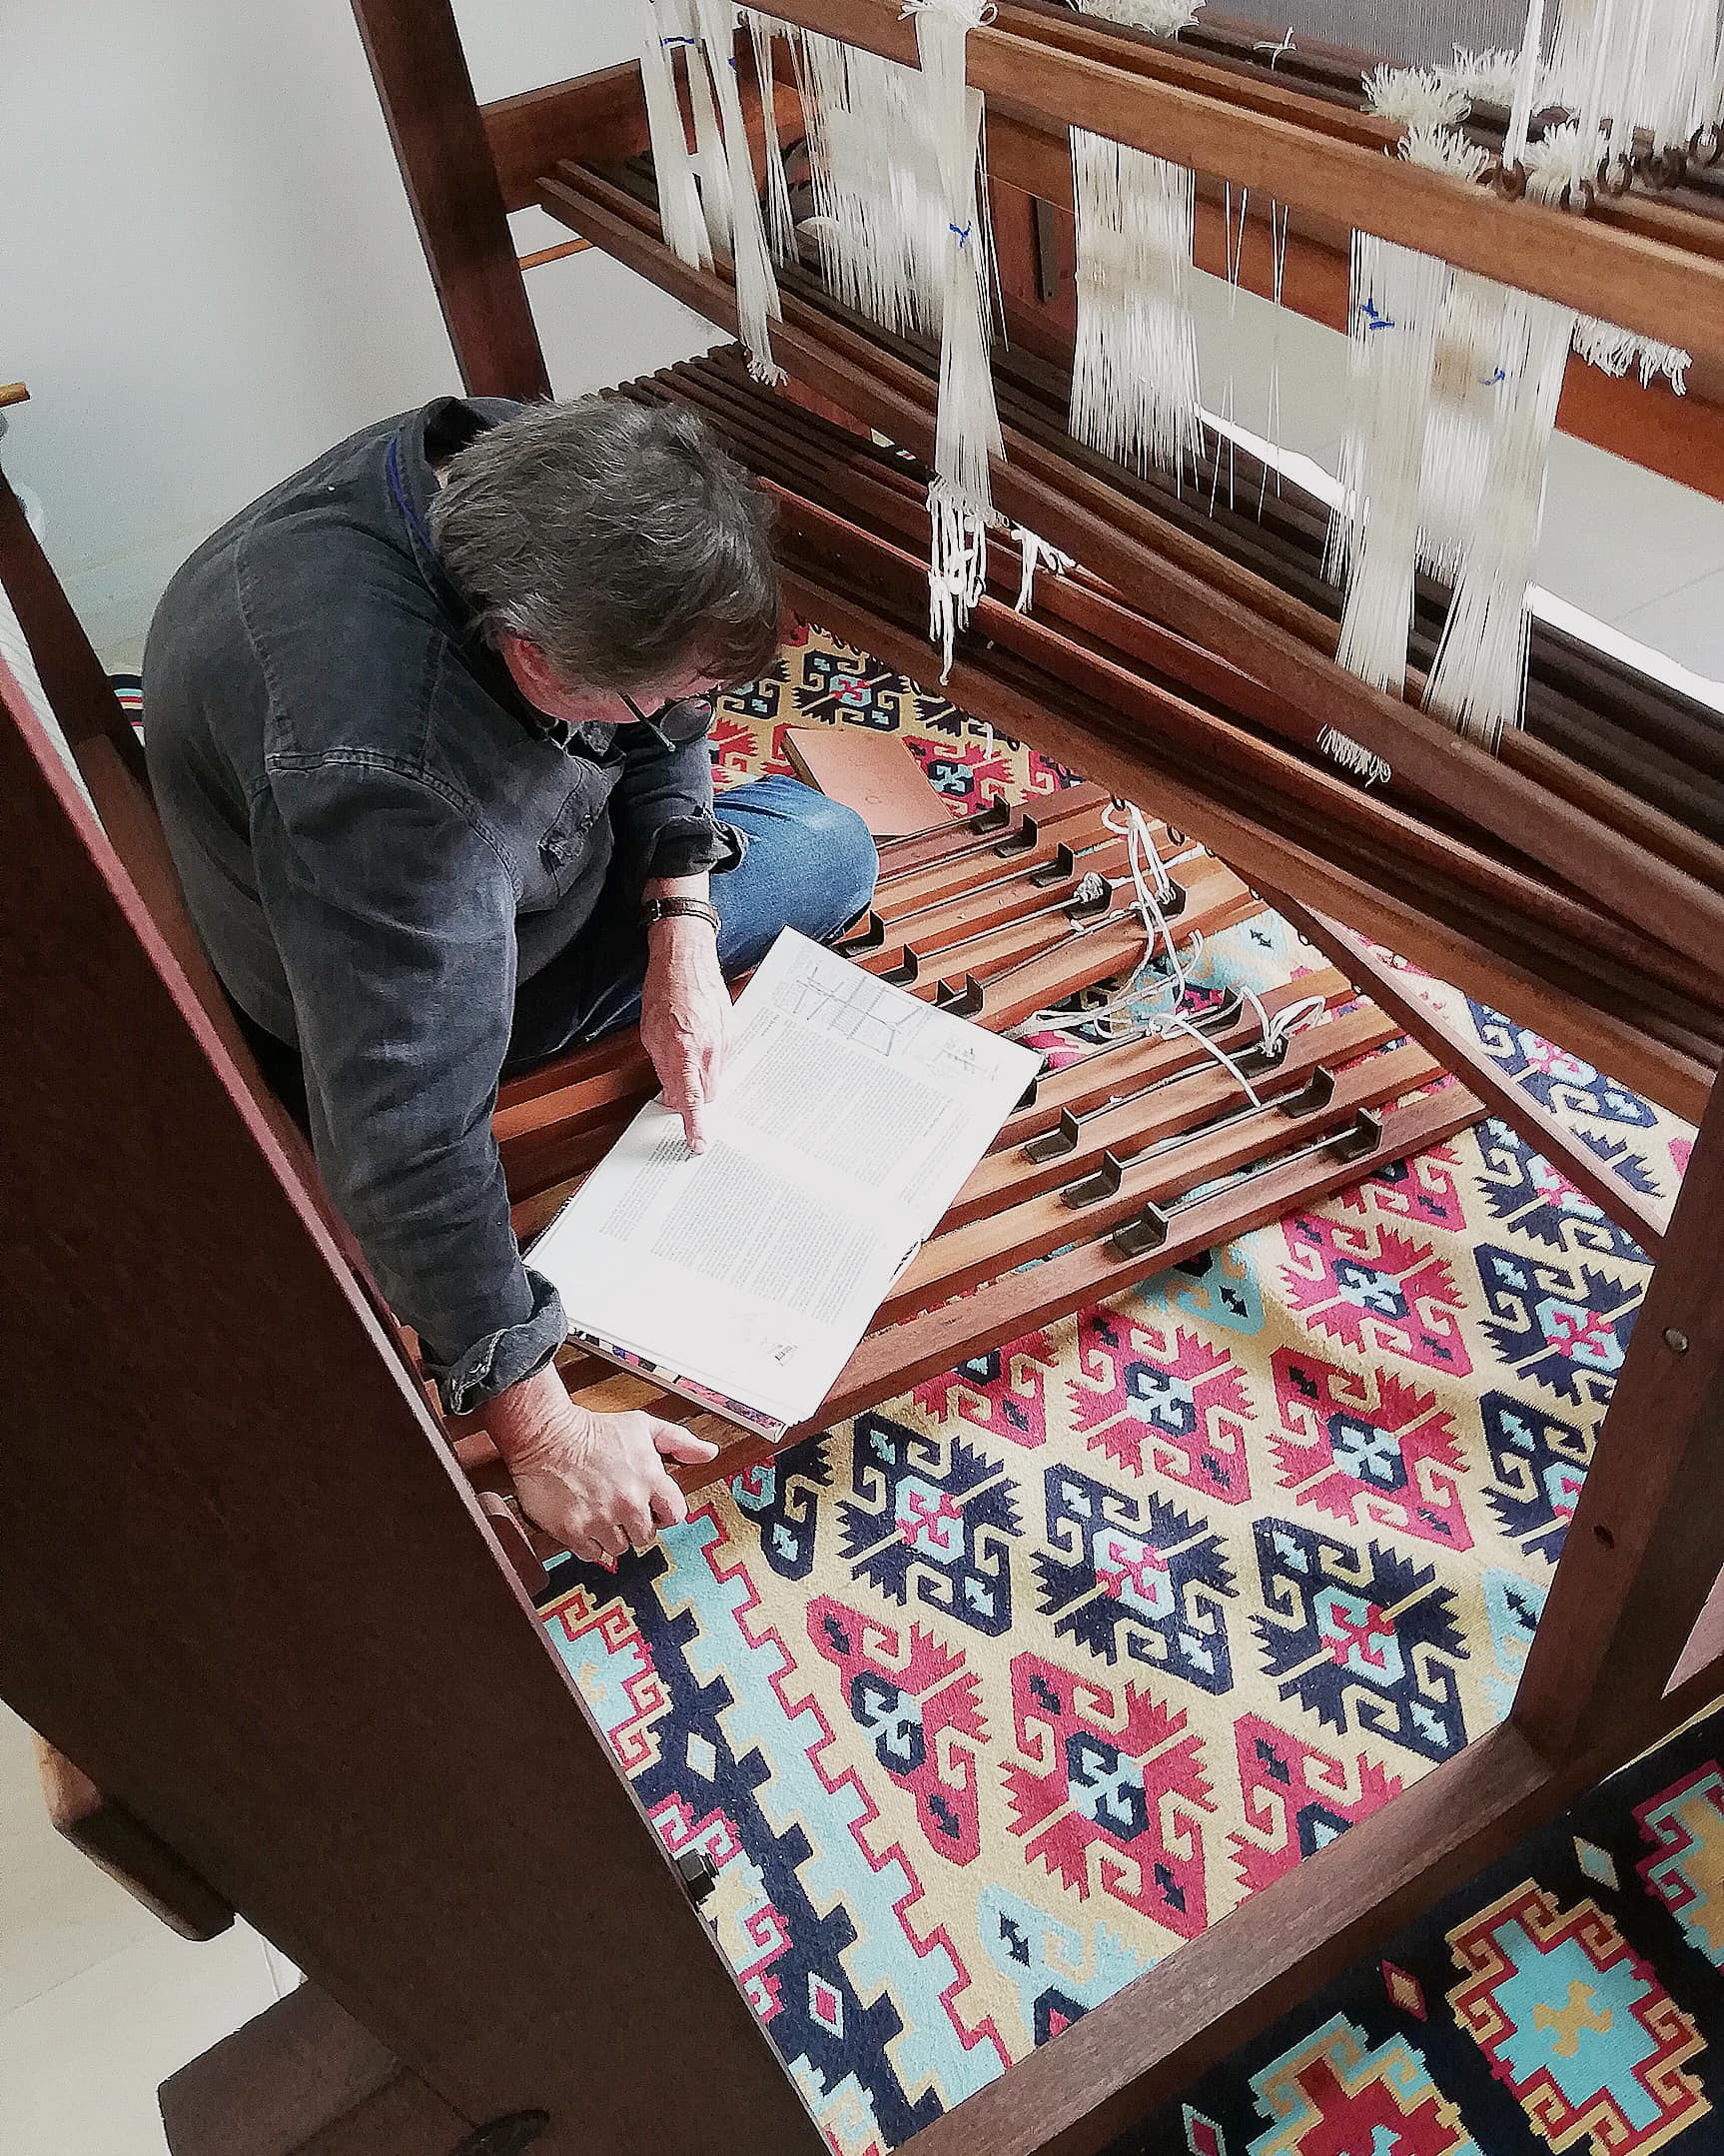 Mungo founder and Master Weaver, Stuart Holding reading a manual to help set up a hand weaving loom for Mungo head designer, Lenore